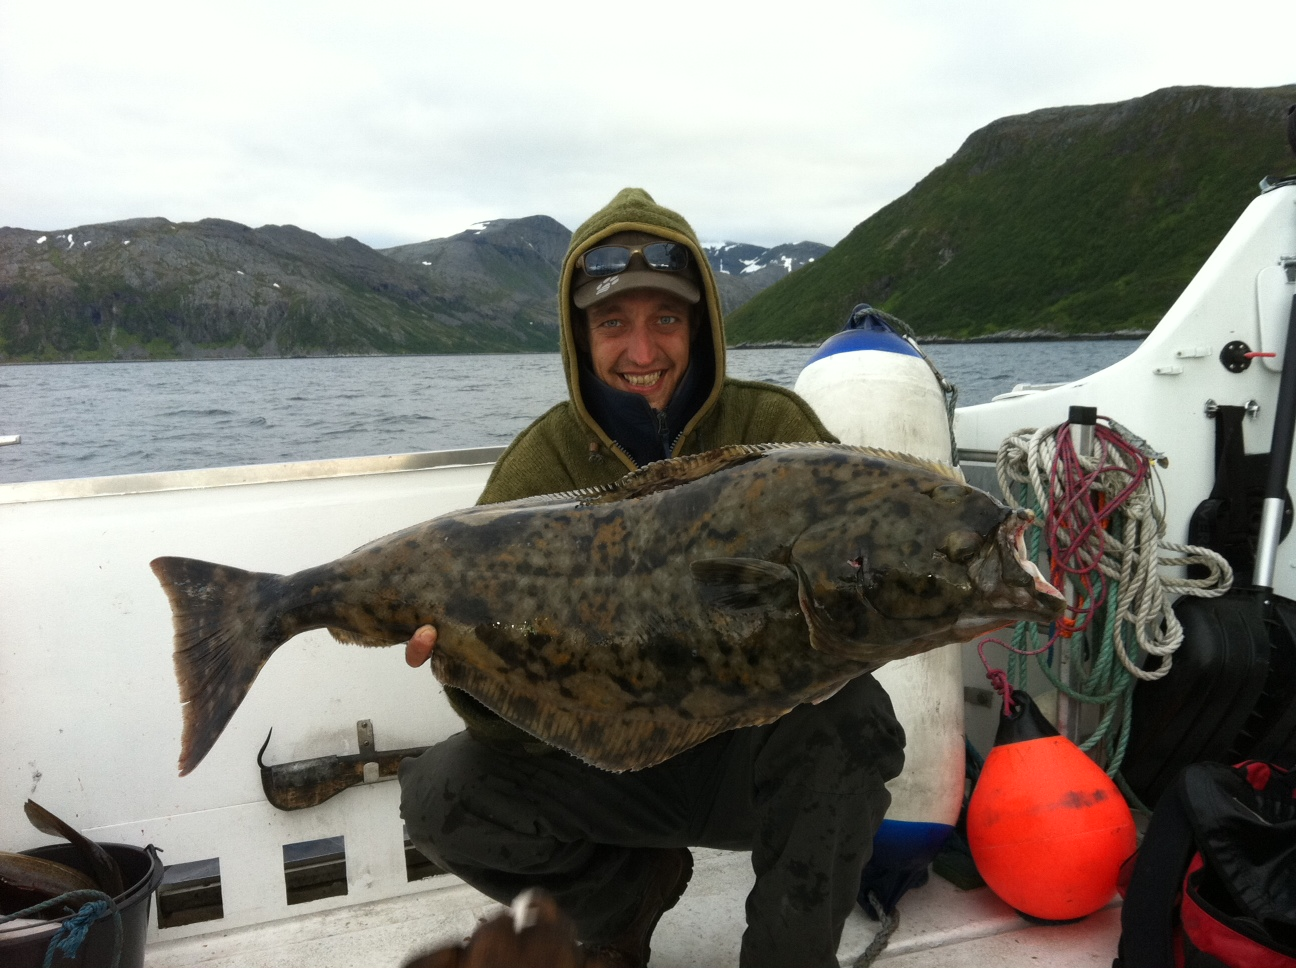 Hunting for the massive halibut with a guide